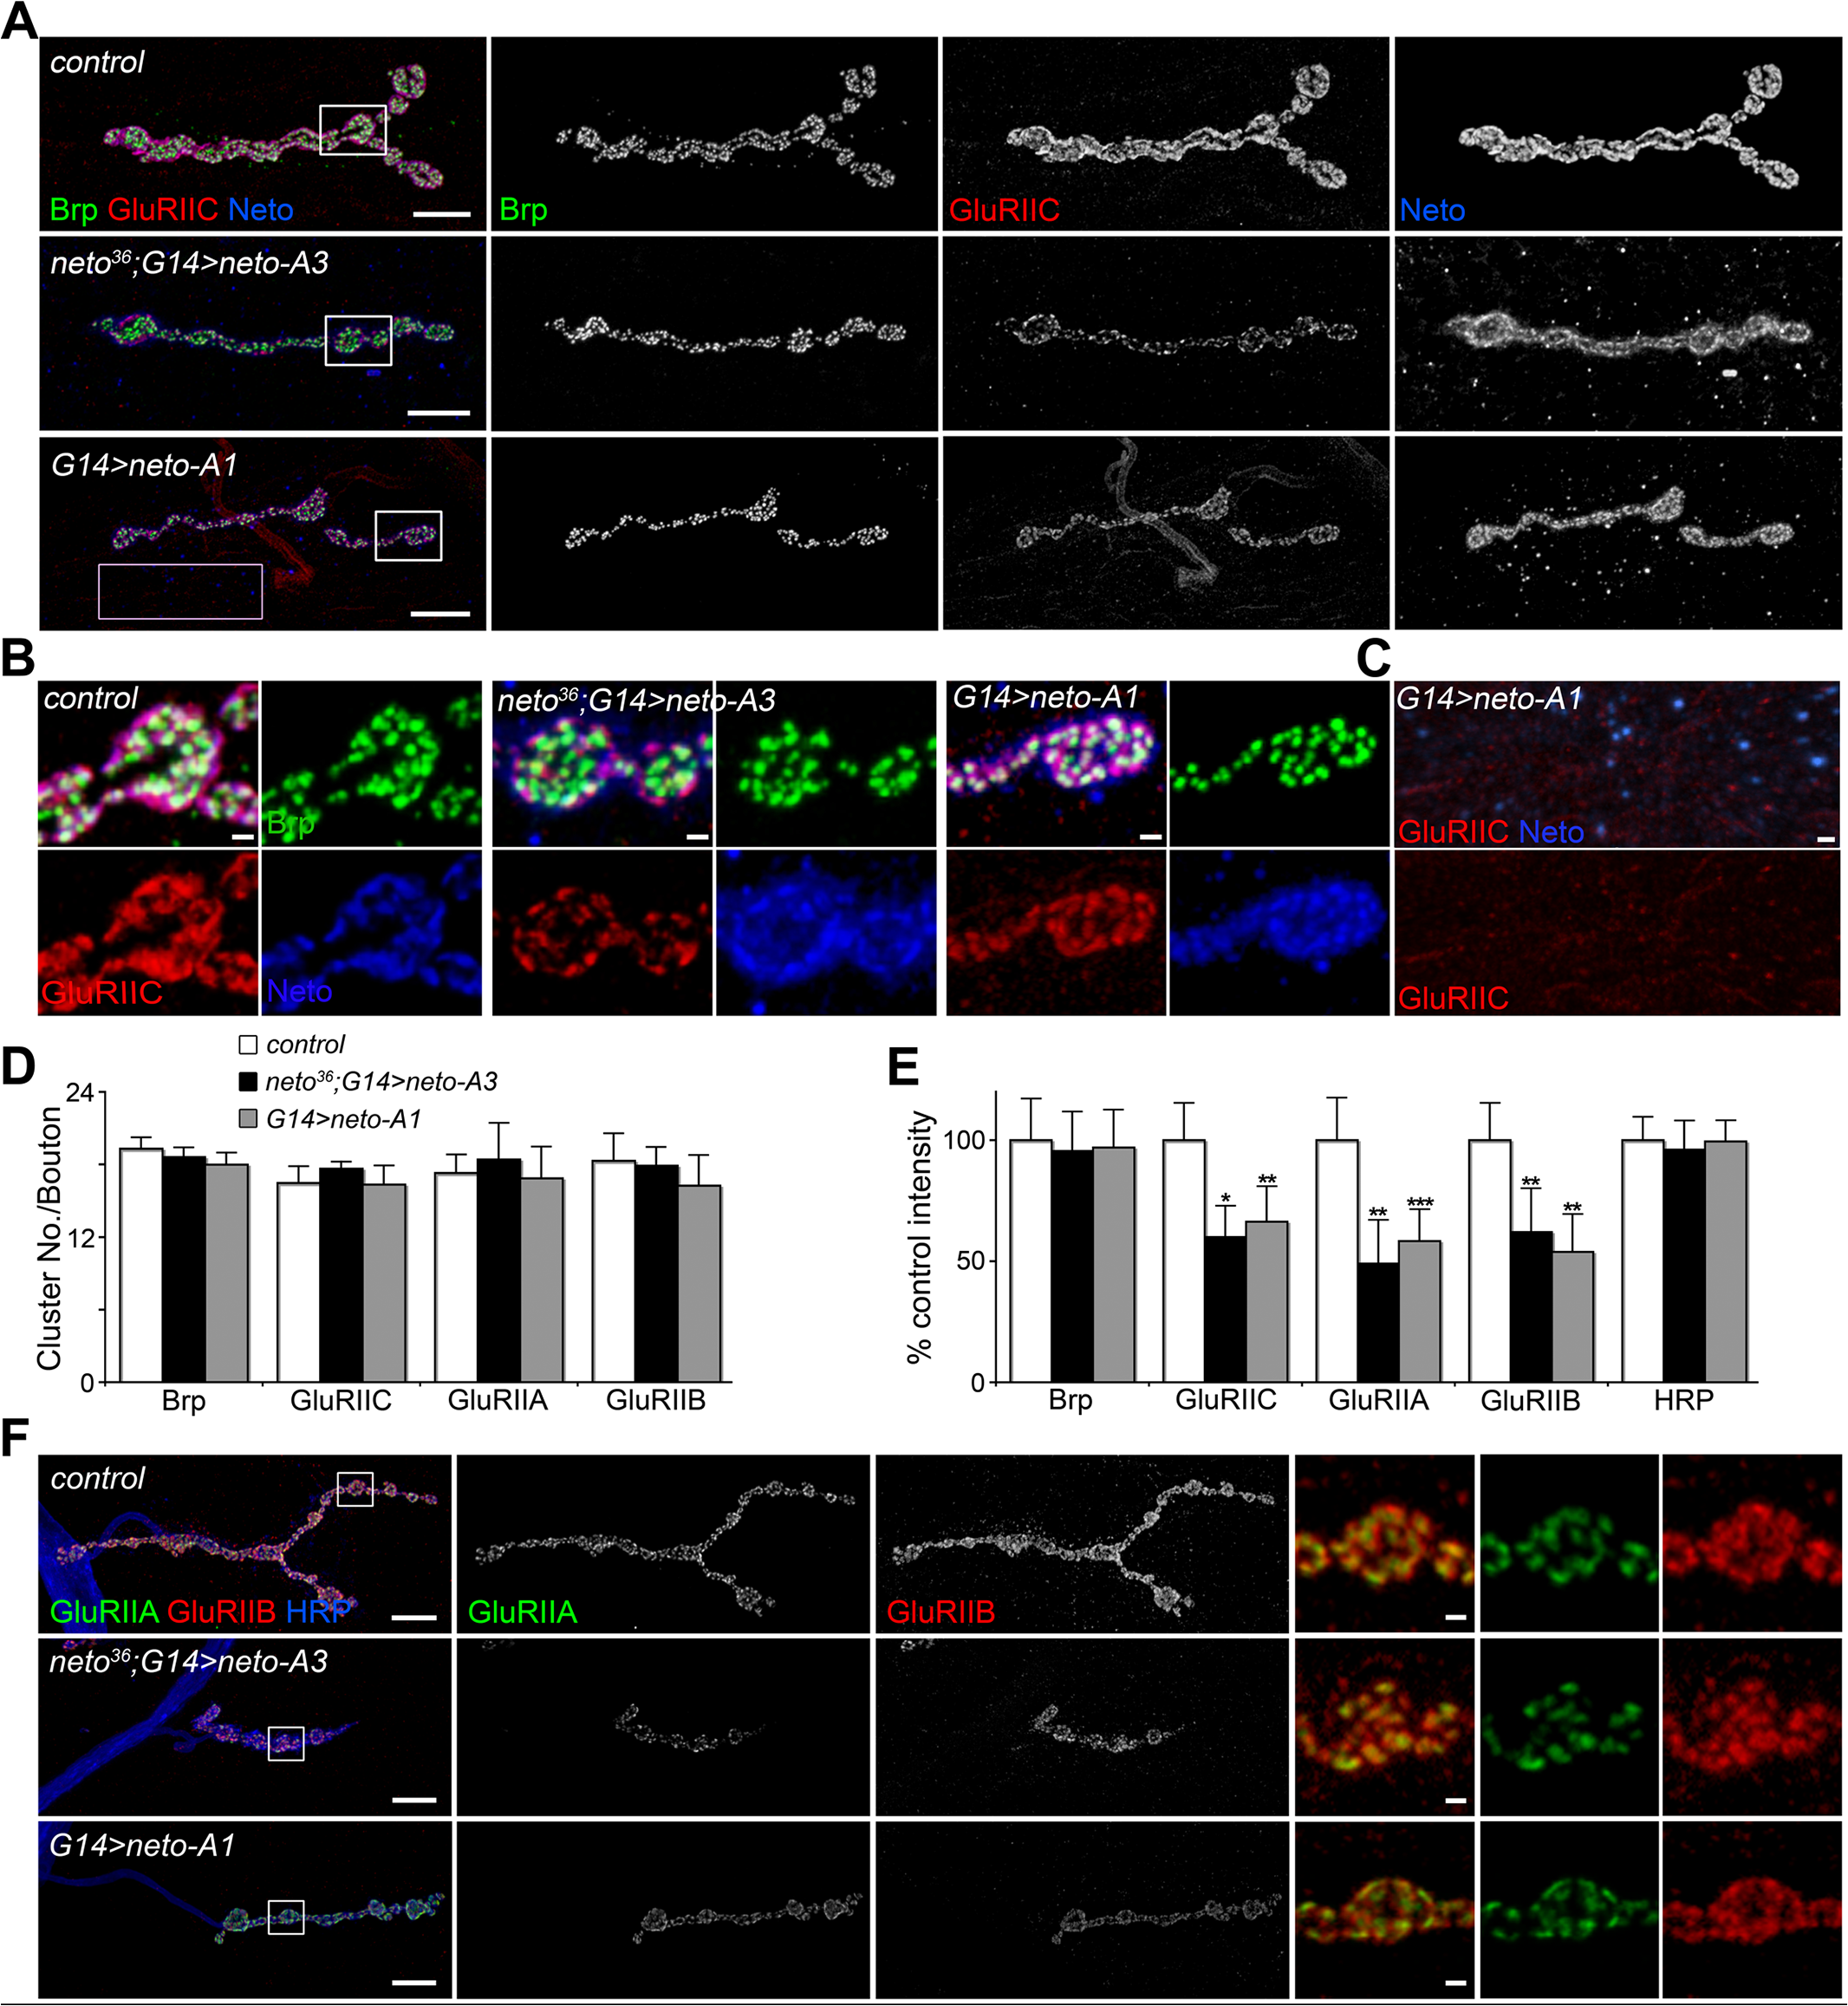 Excess Neto causes reduced iGluR synaptic clusters.